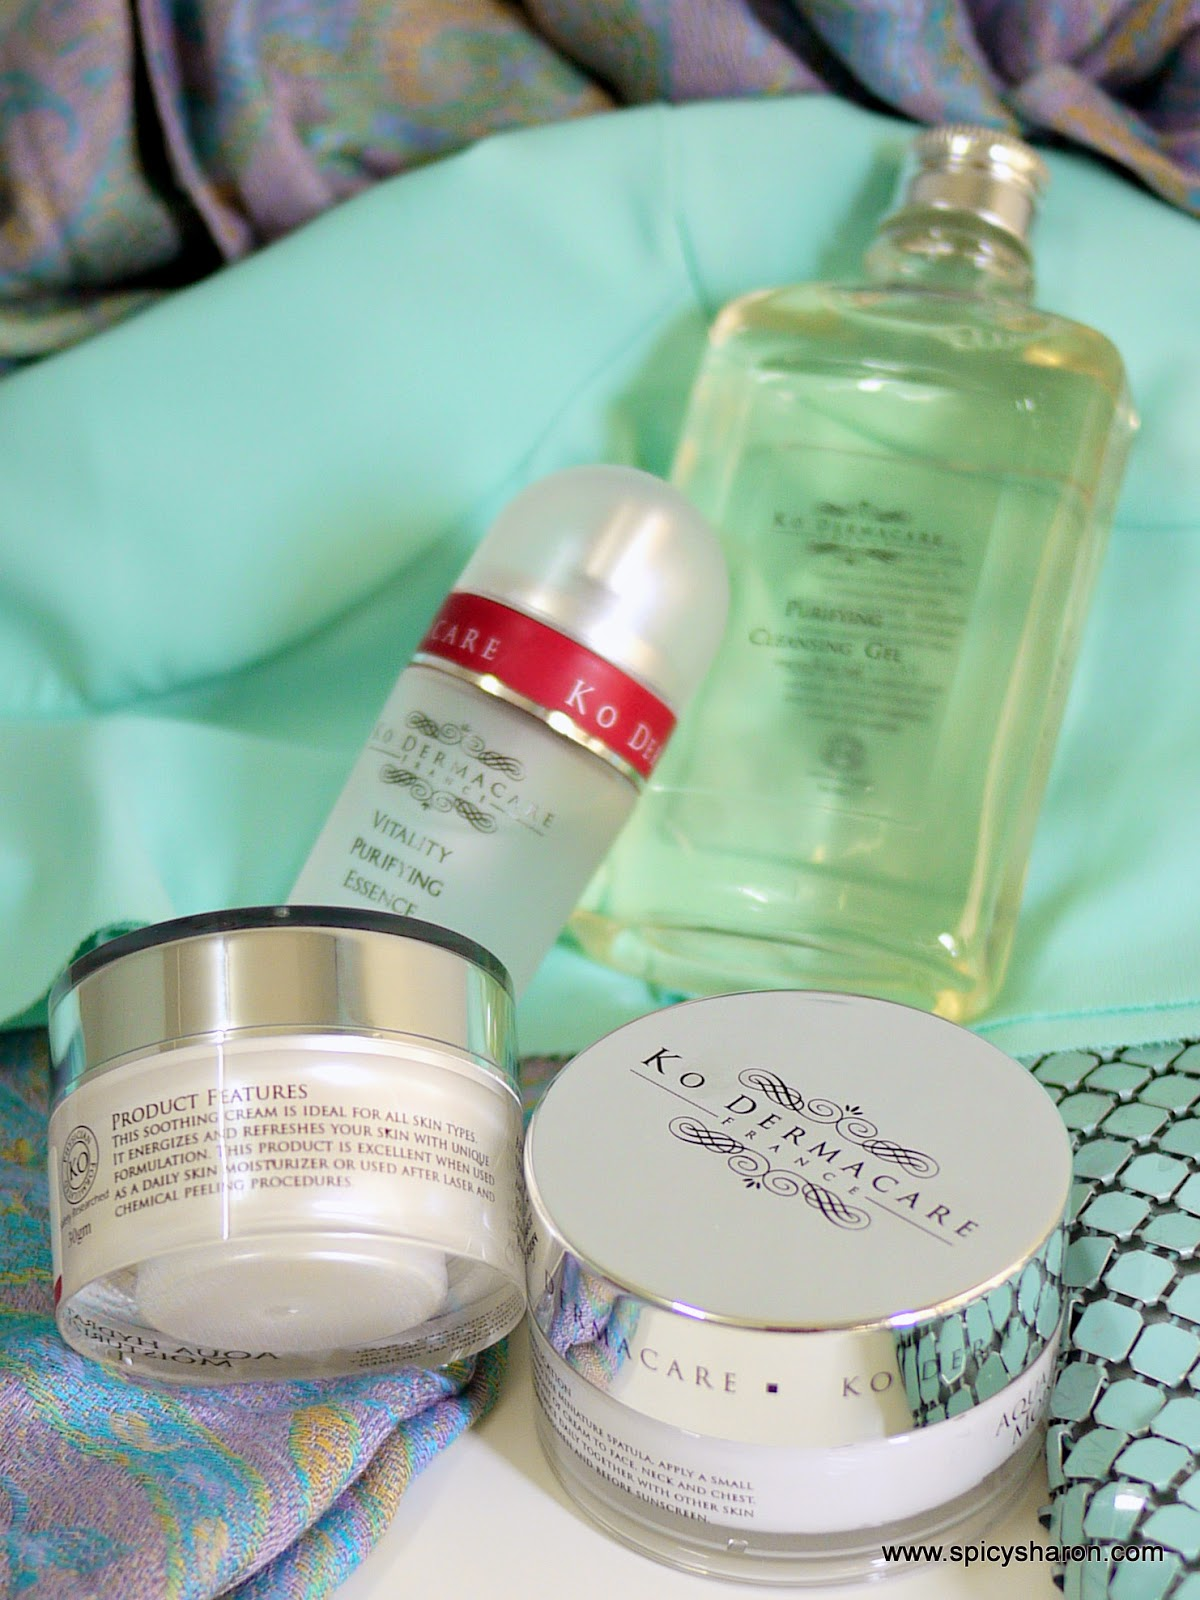 KO Skincare Specialist Product Review - The Beauty Haul